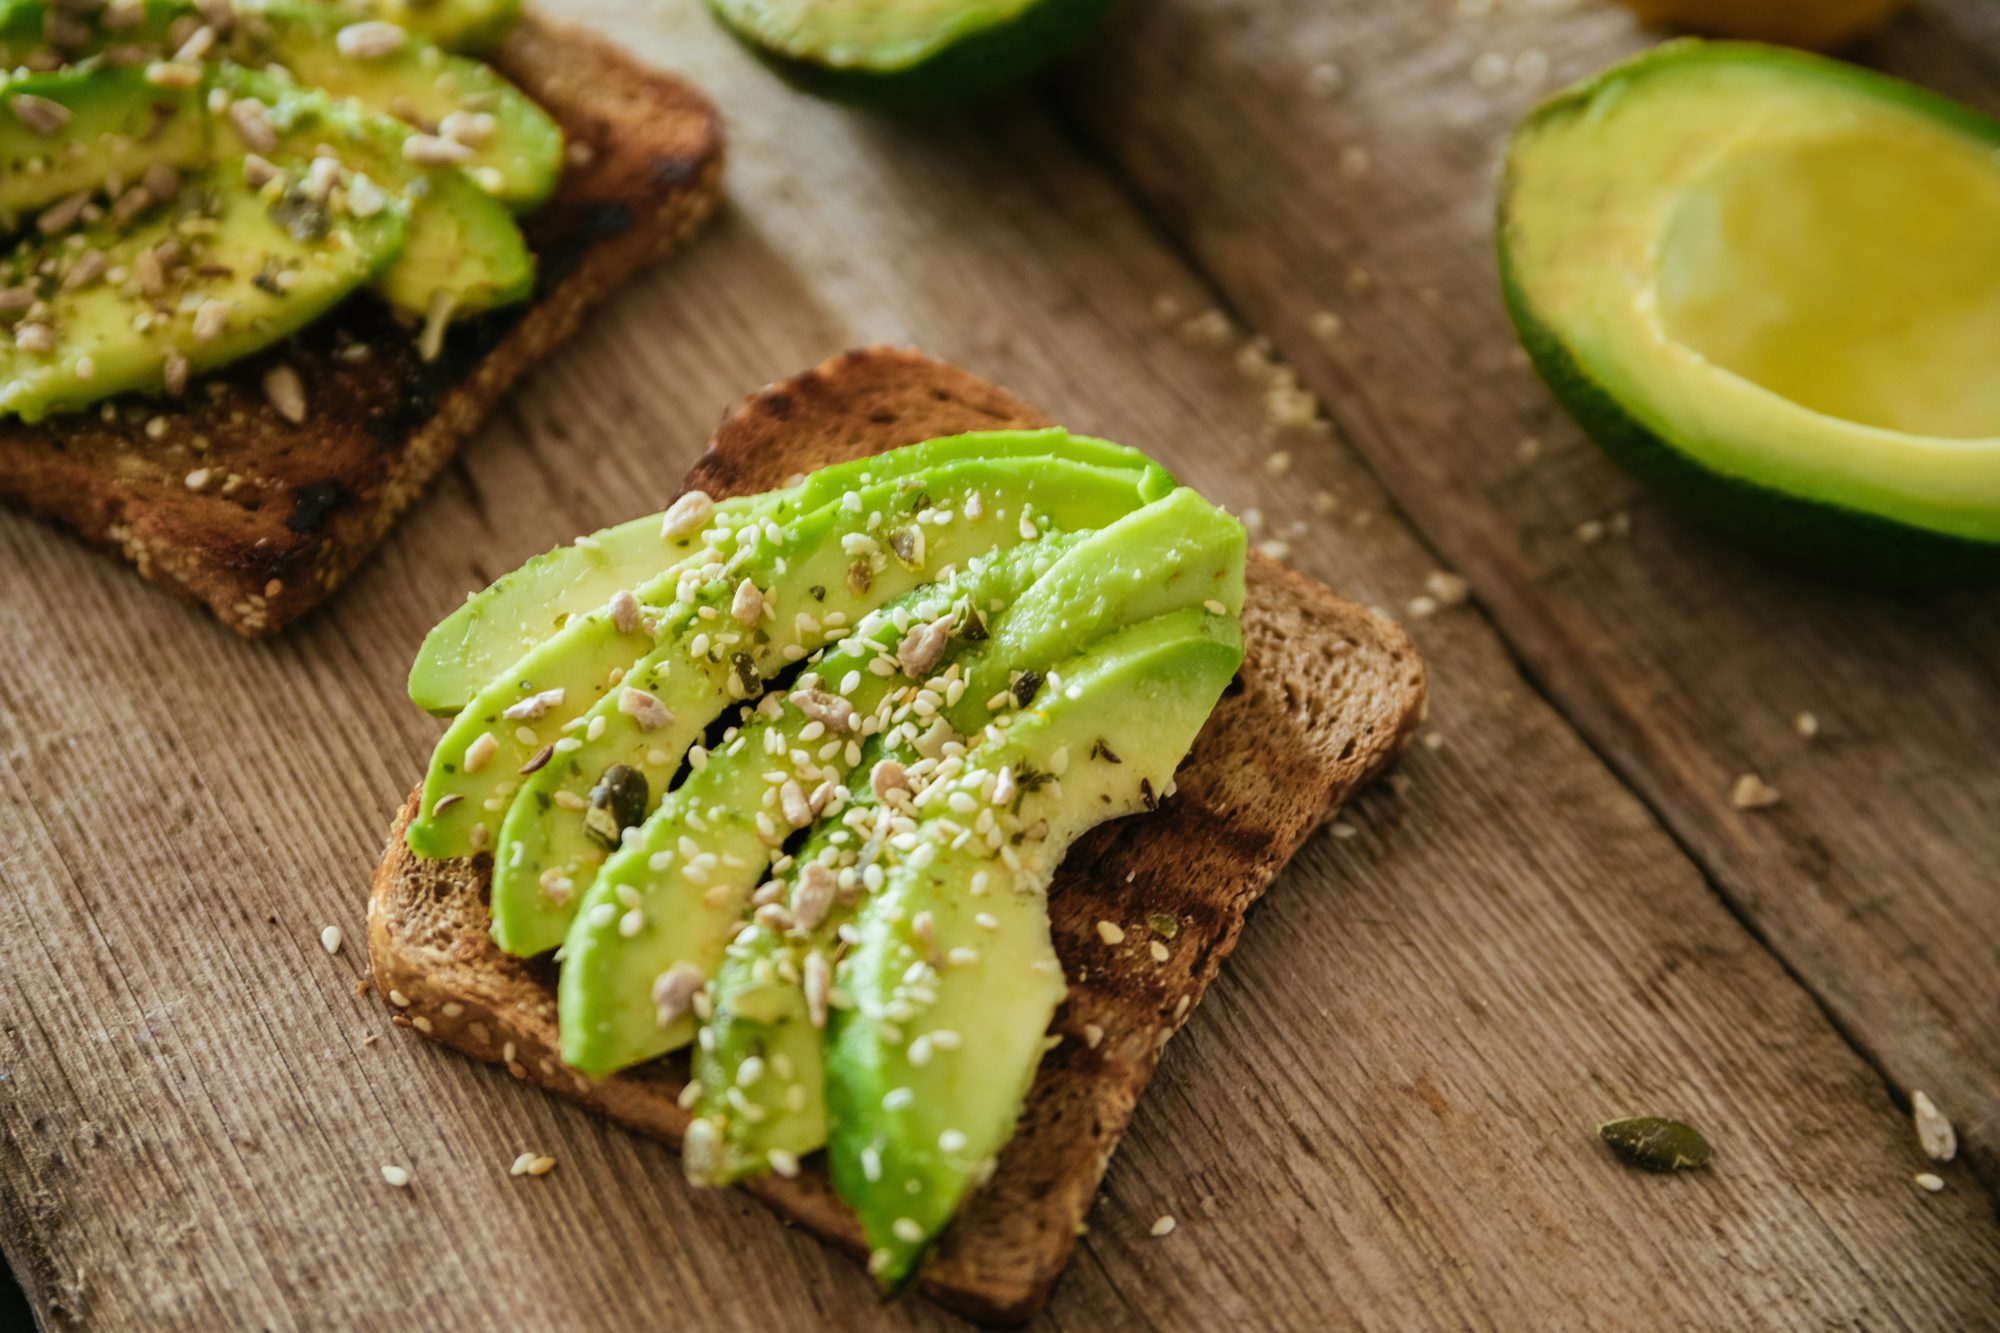 You Can Get a Year of Free Avocado Toast If You Buy This $300K Condo